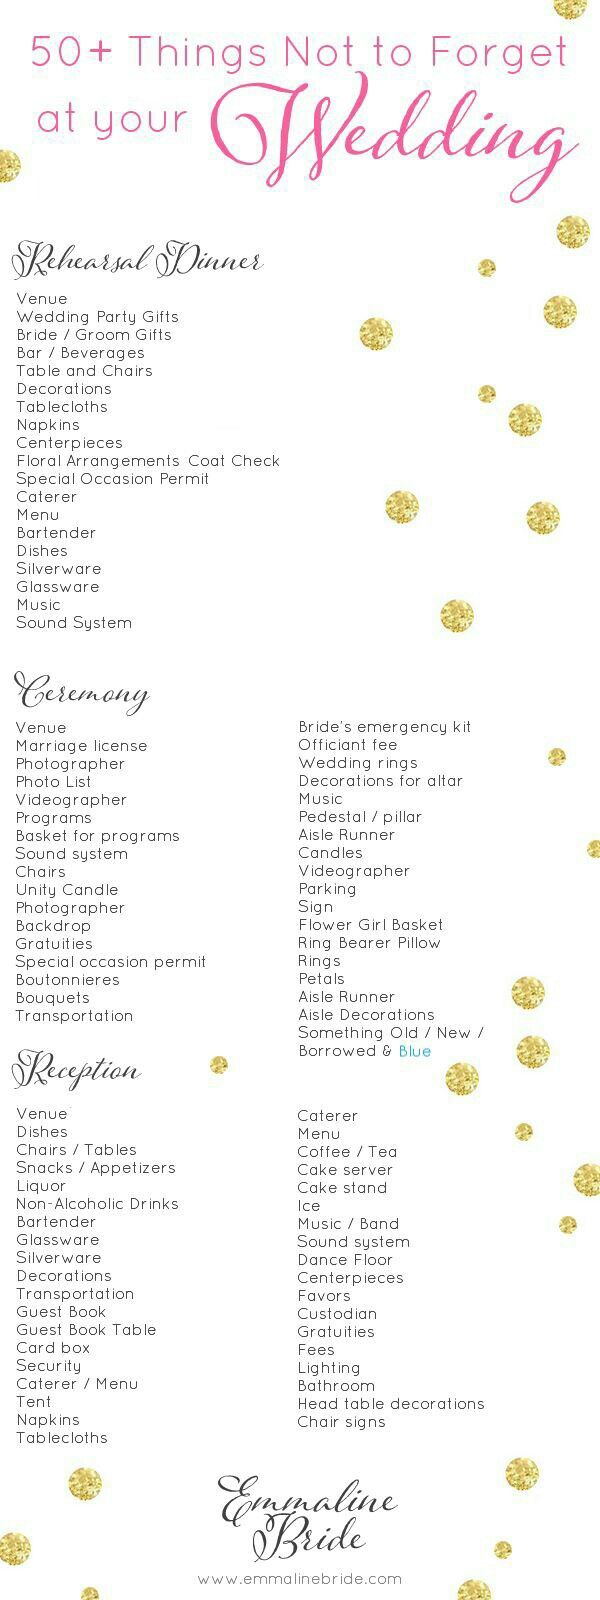 Things not to forget for the wedding wedding registry ideas bride to be reading wedding checklist things not to forget at your diy or planned wedding wedding day checklist printable junglespirit Gallery